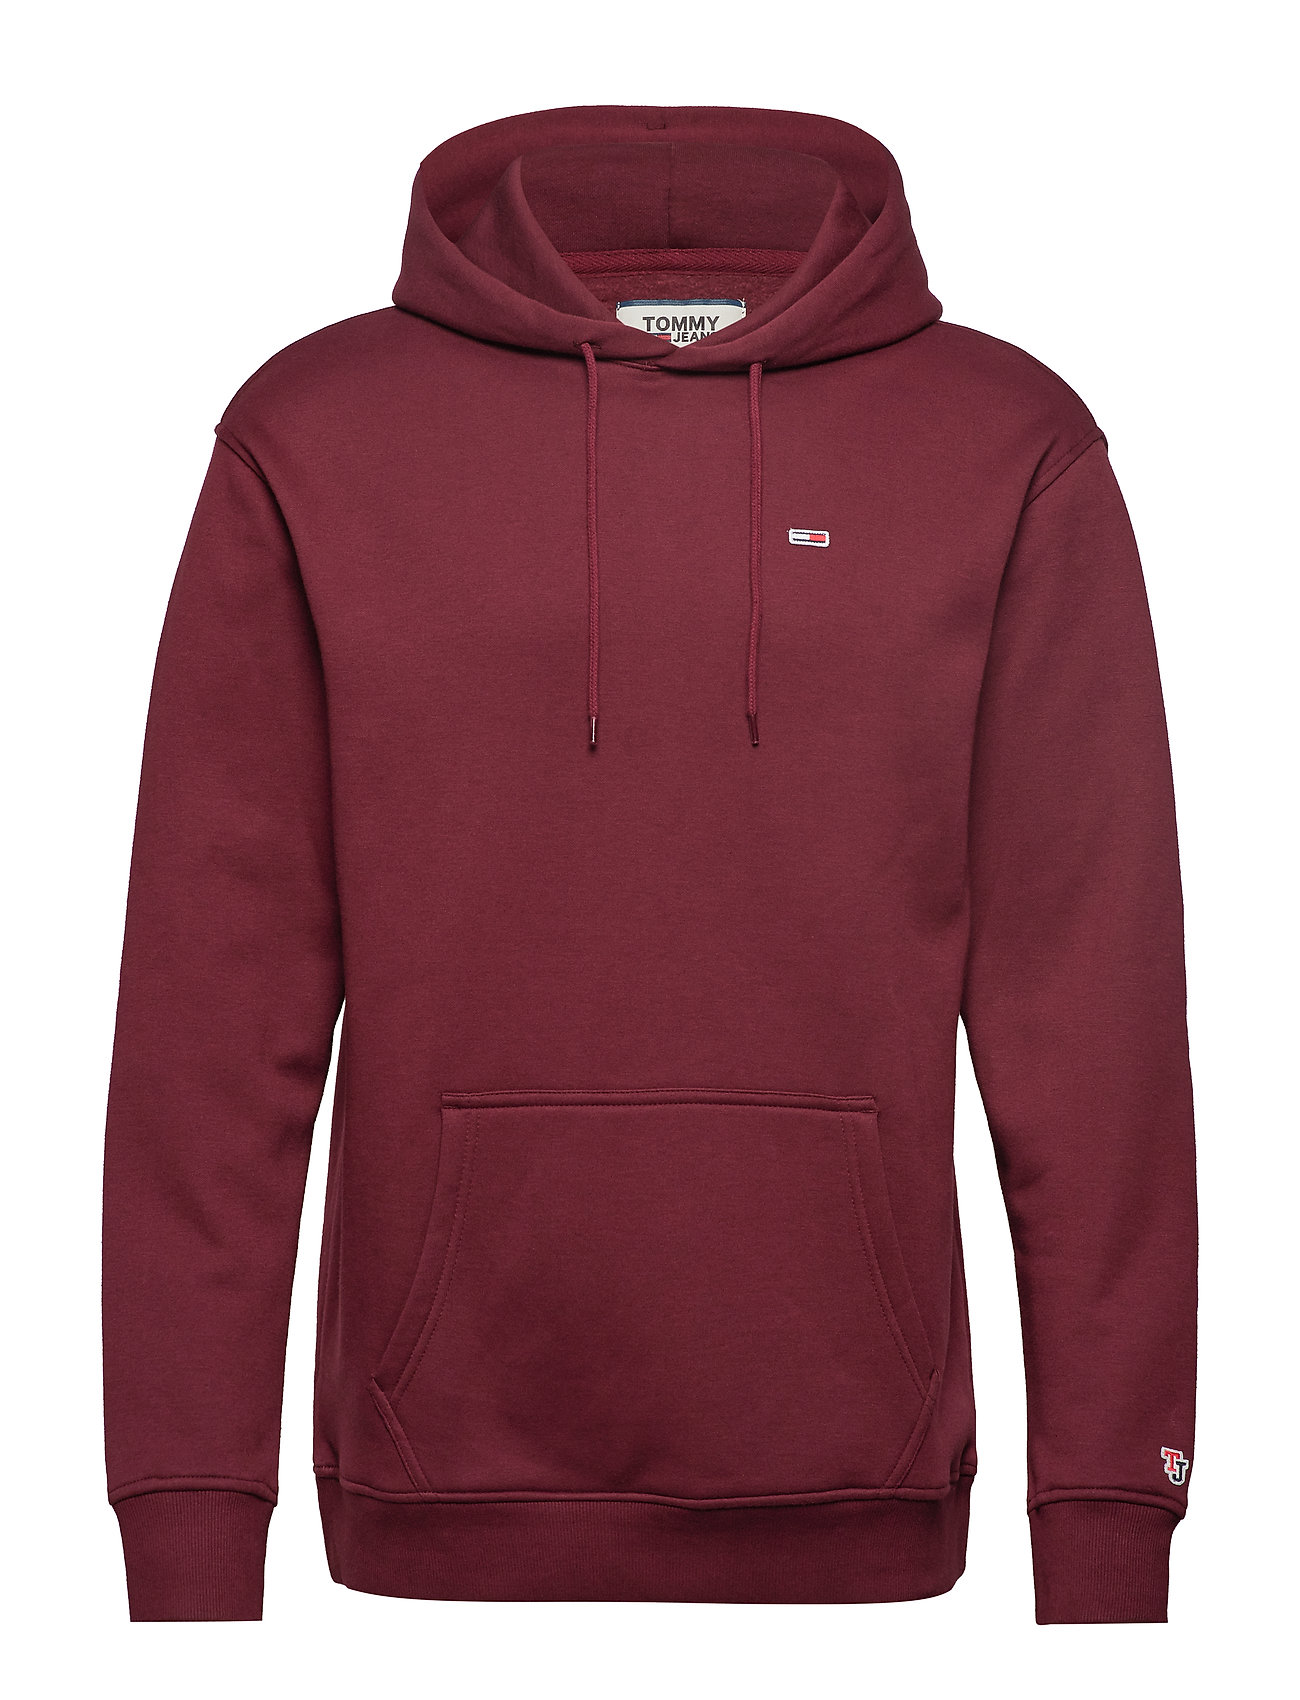 Tommy Jeans TJM TOMMY CLASSICS HOODIE - BURGUNDY